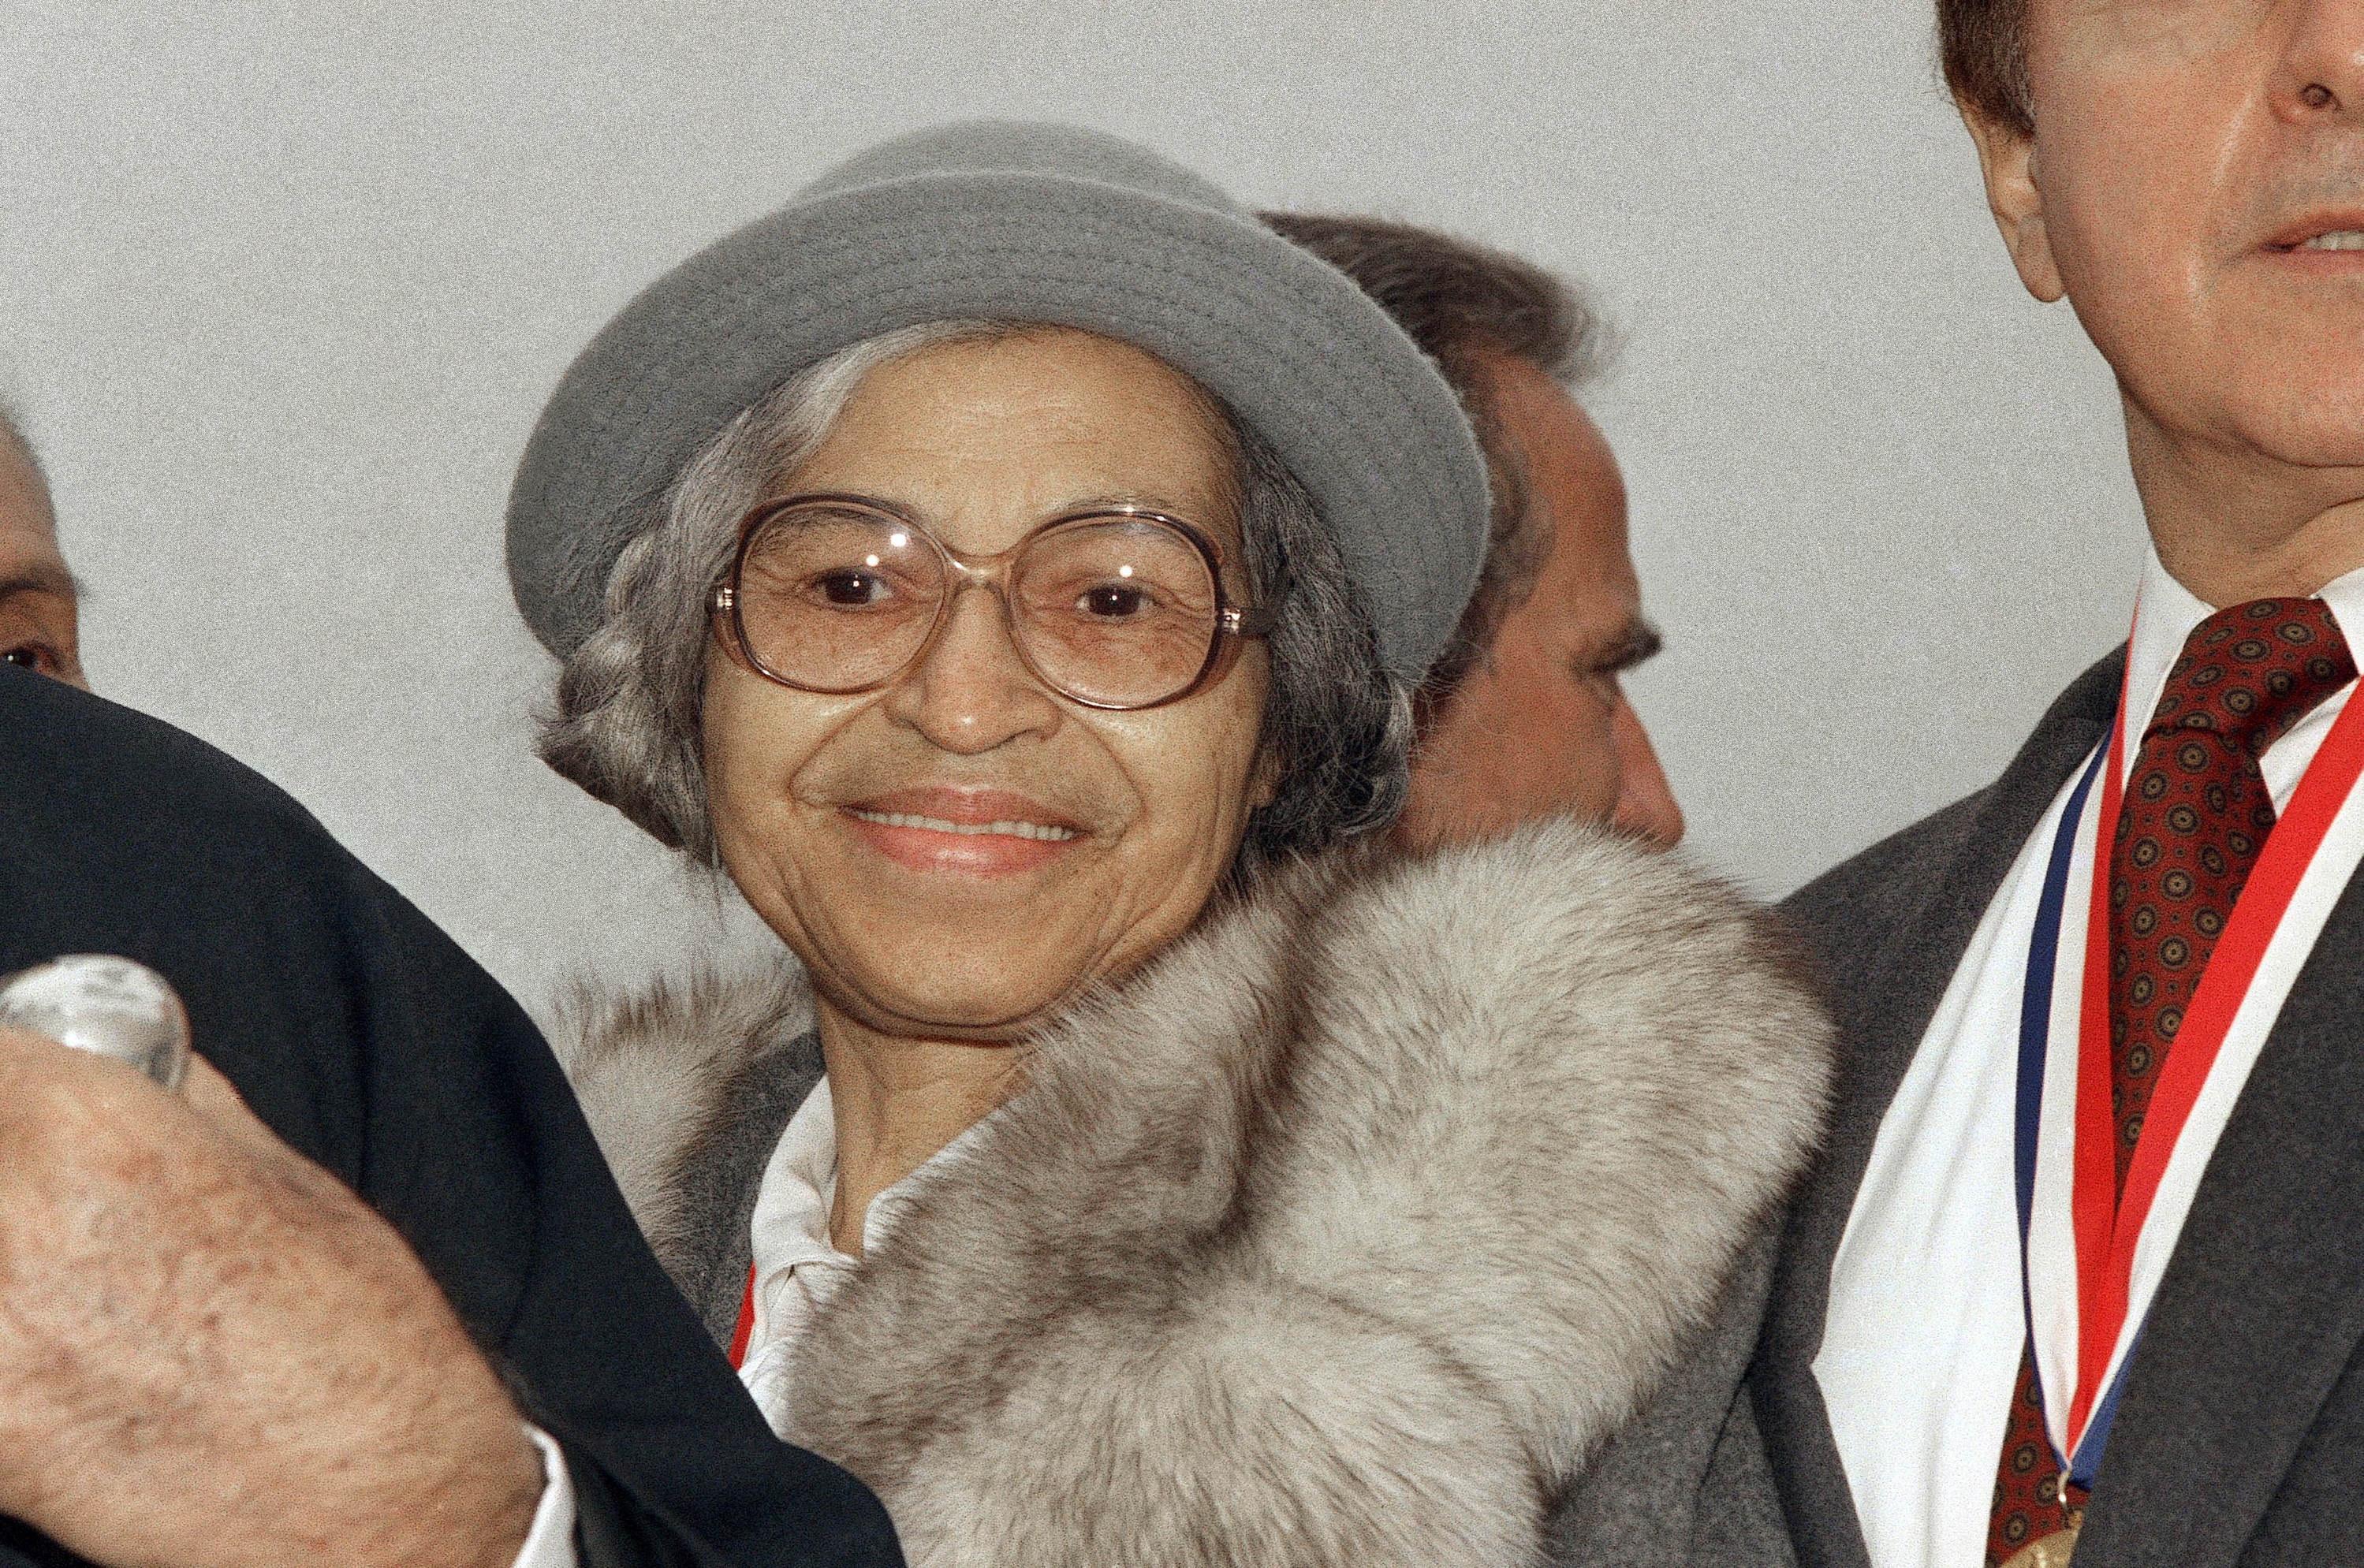 FILE - This Oct. 28, 1986, file photo shows Rosa Parks at Ellis Island in New York. The AP reported on Aug. 25, 2017, that a story circulating online that Parks' daughter praised President Donald Trump's response to violence in Charlottesville, Va. is false. Parks didn't have any children. (AP Photo, File)